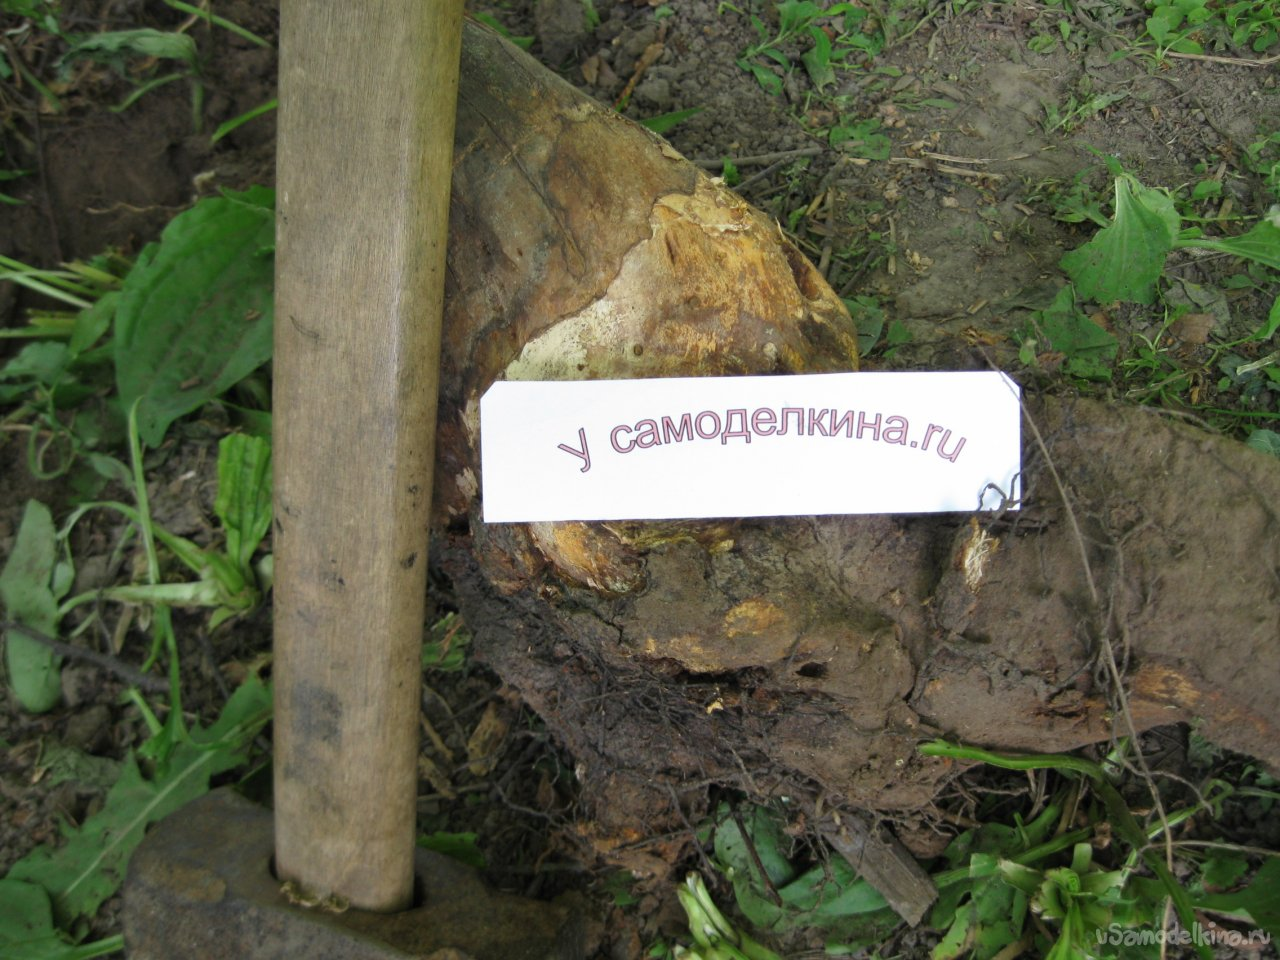 How to uproot stumps using one sledgehammer